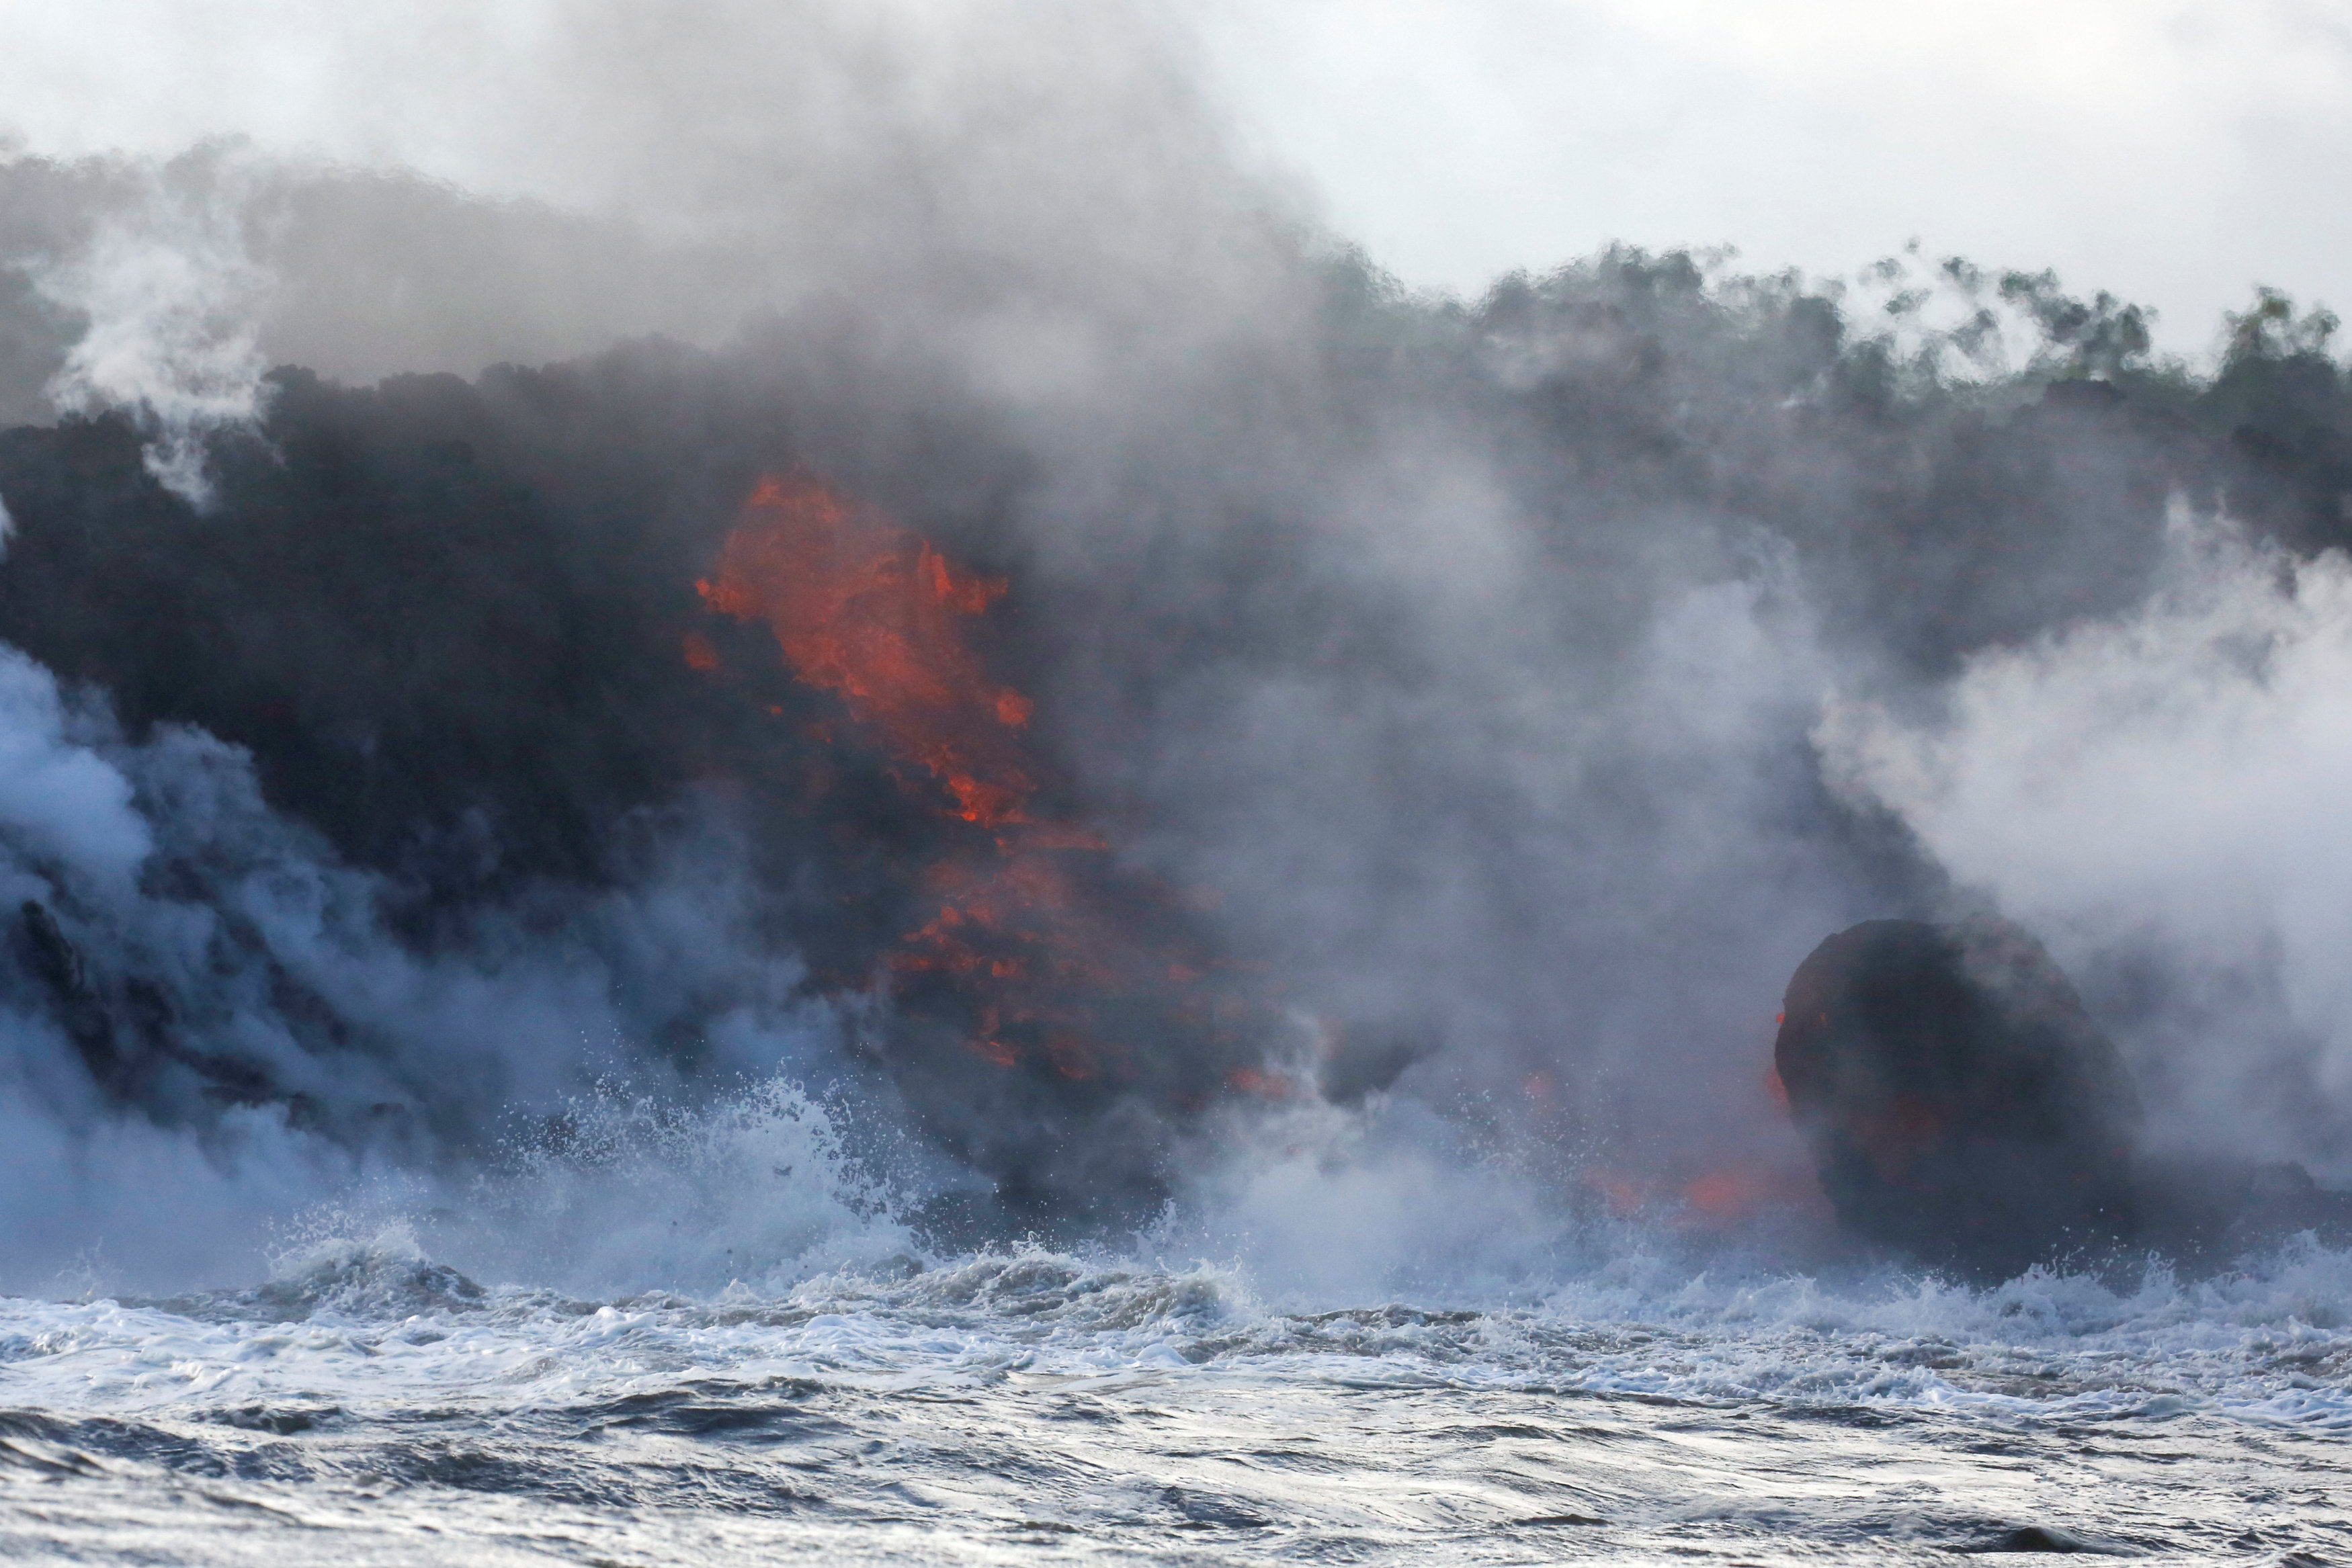 Lava flows into the Pacific Ocean southeast of Pahoa during ongoing eruptions of the Kilauea Volcano in Hawaii, U.S., May 20, 2018. REUTERS/Terray Sylvester